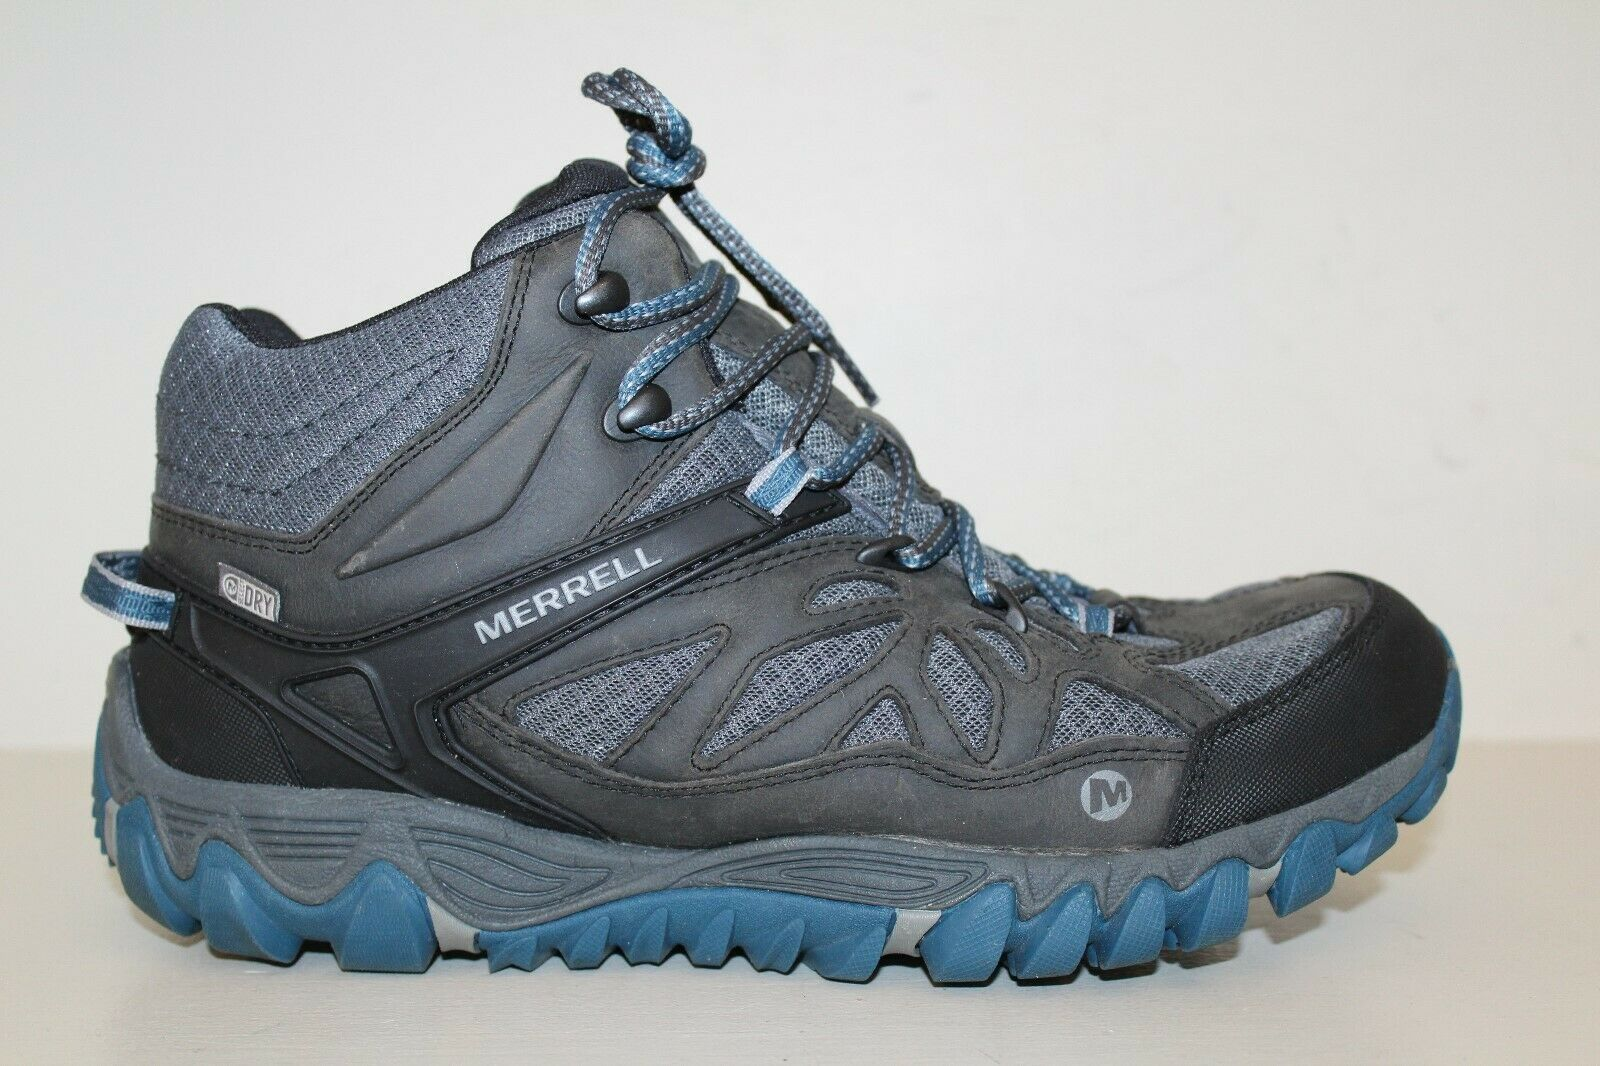 6256b346d64 Dry Unifly Hiking Boots Mens Sz 10 44 Leather Outdoors Work Trail Merrell  npebbt1613-new shoes